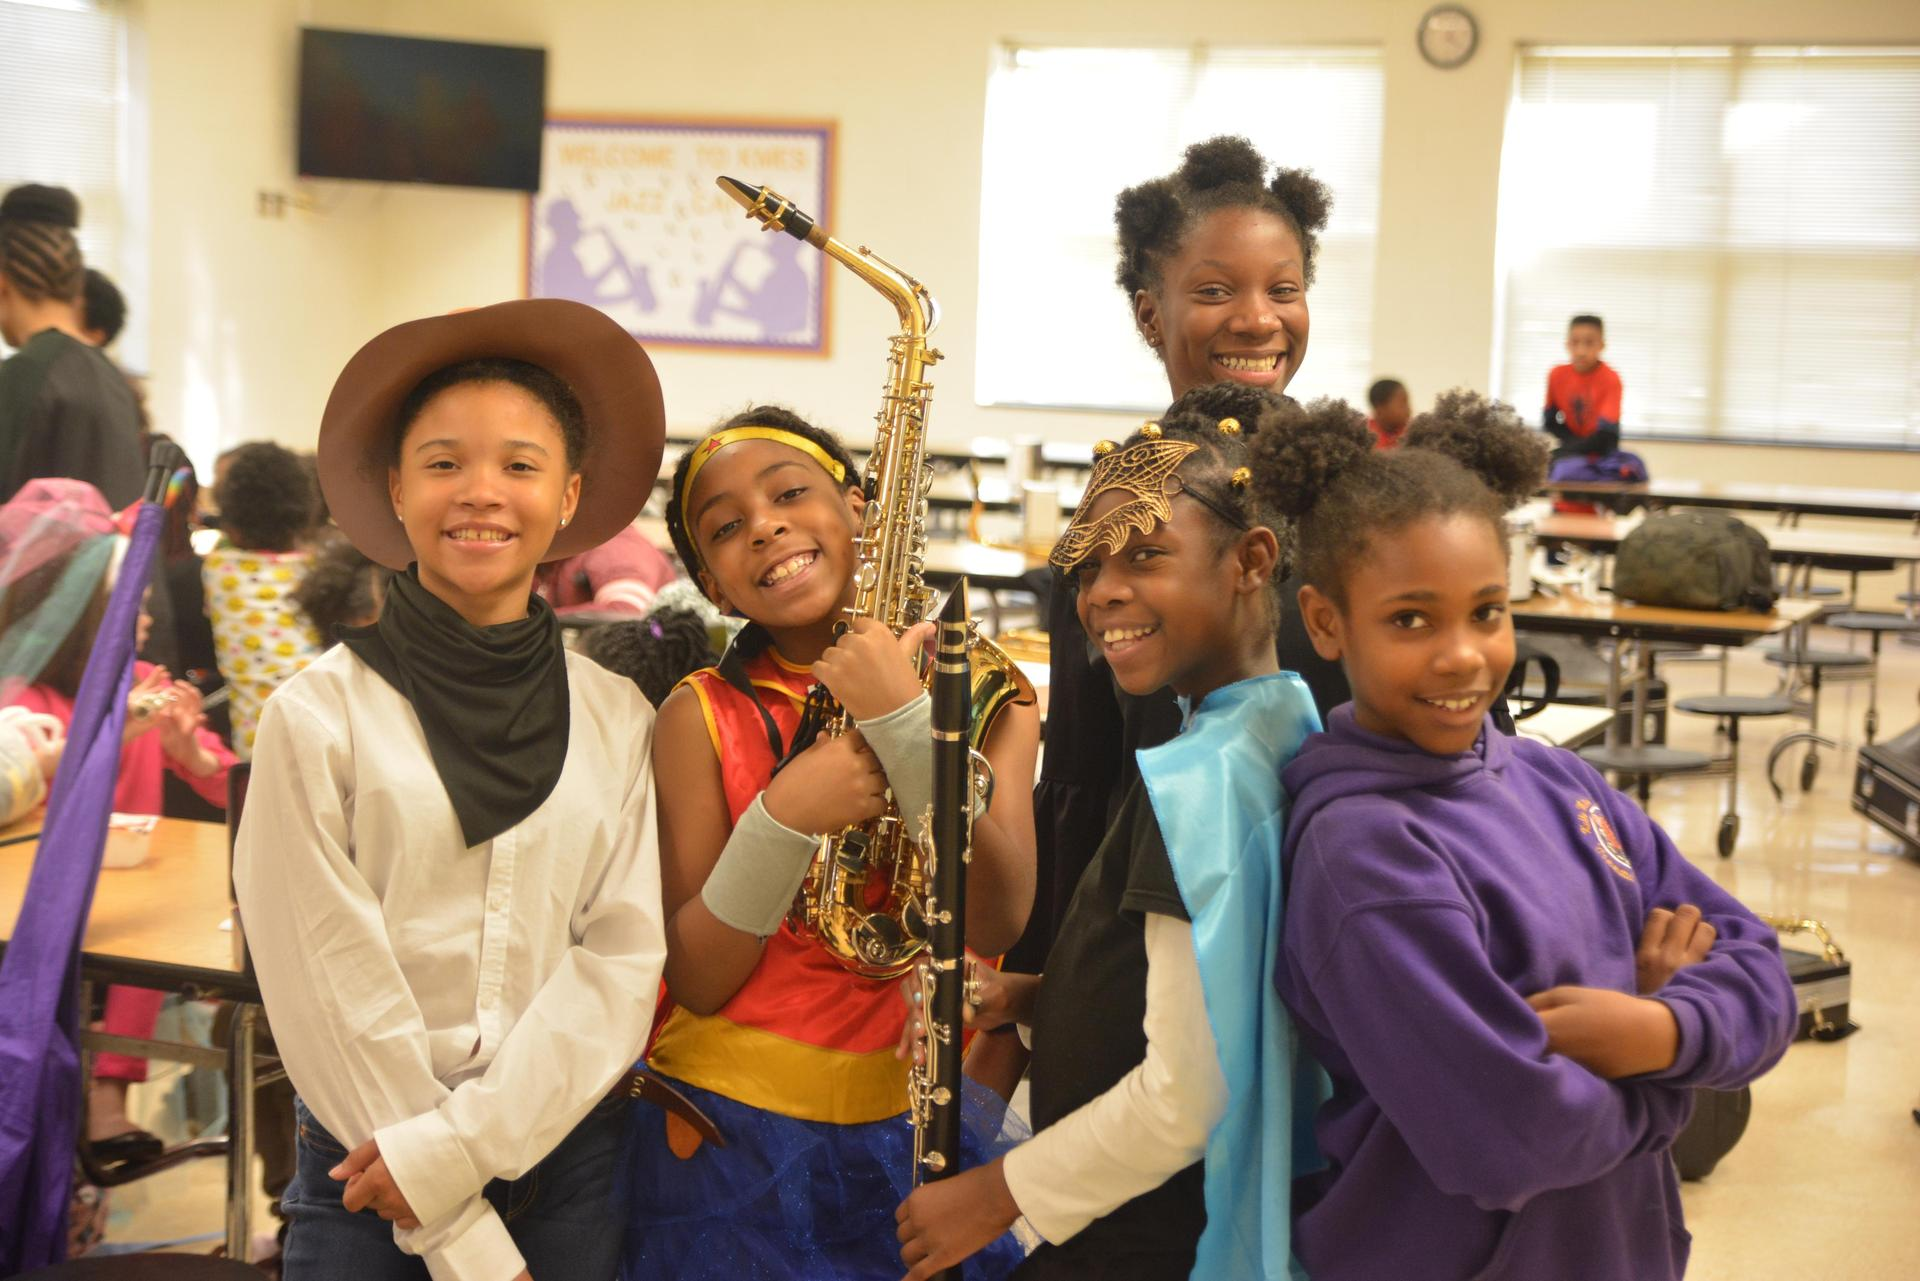 Girls in costumes posing with band instruments.